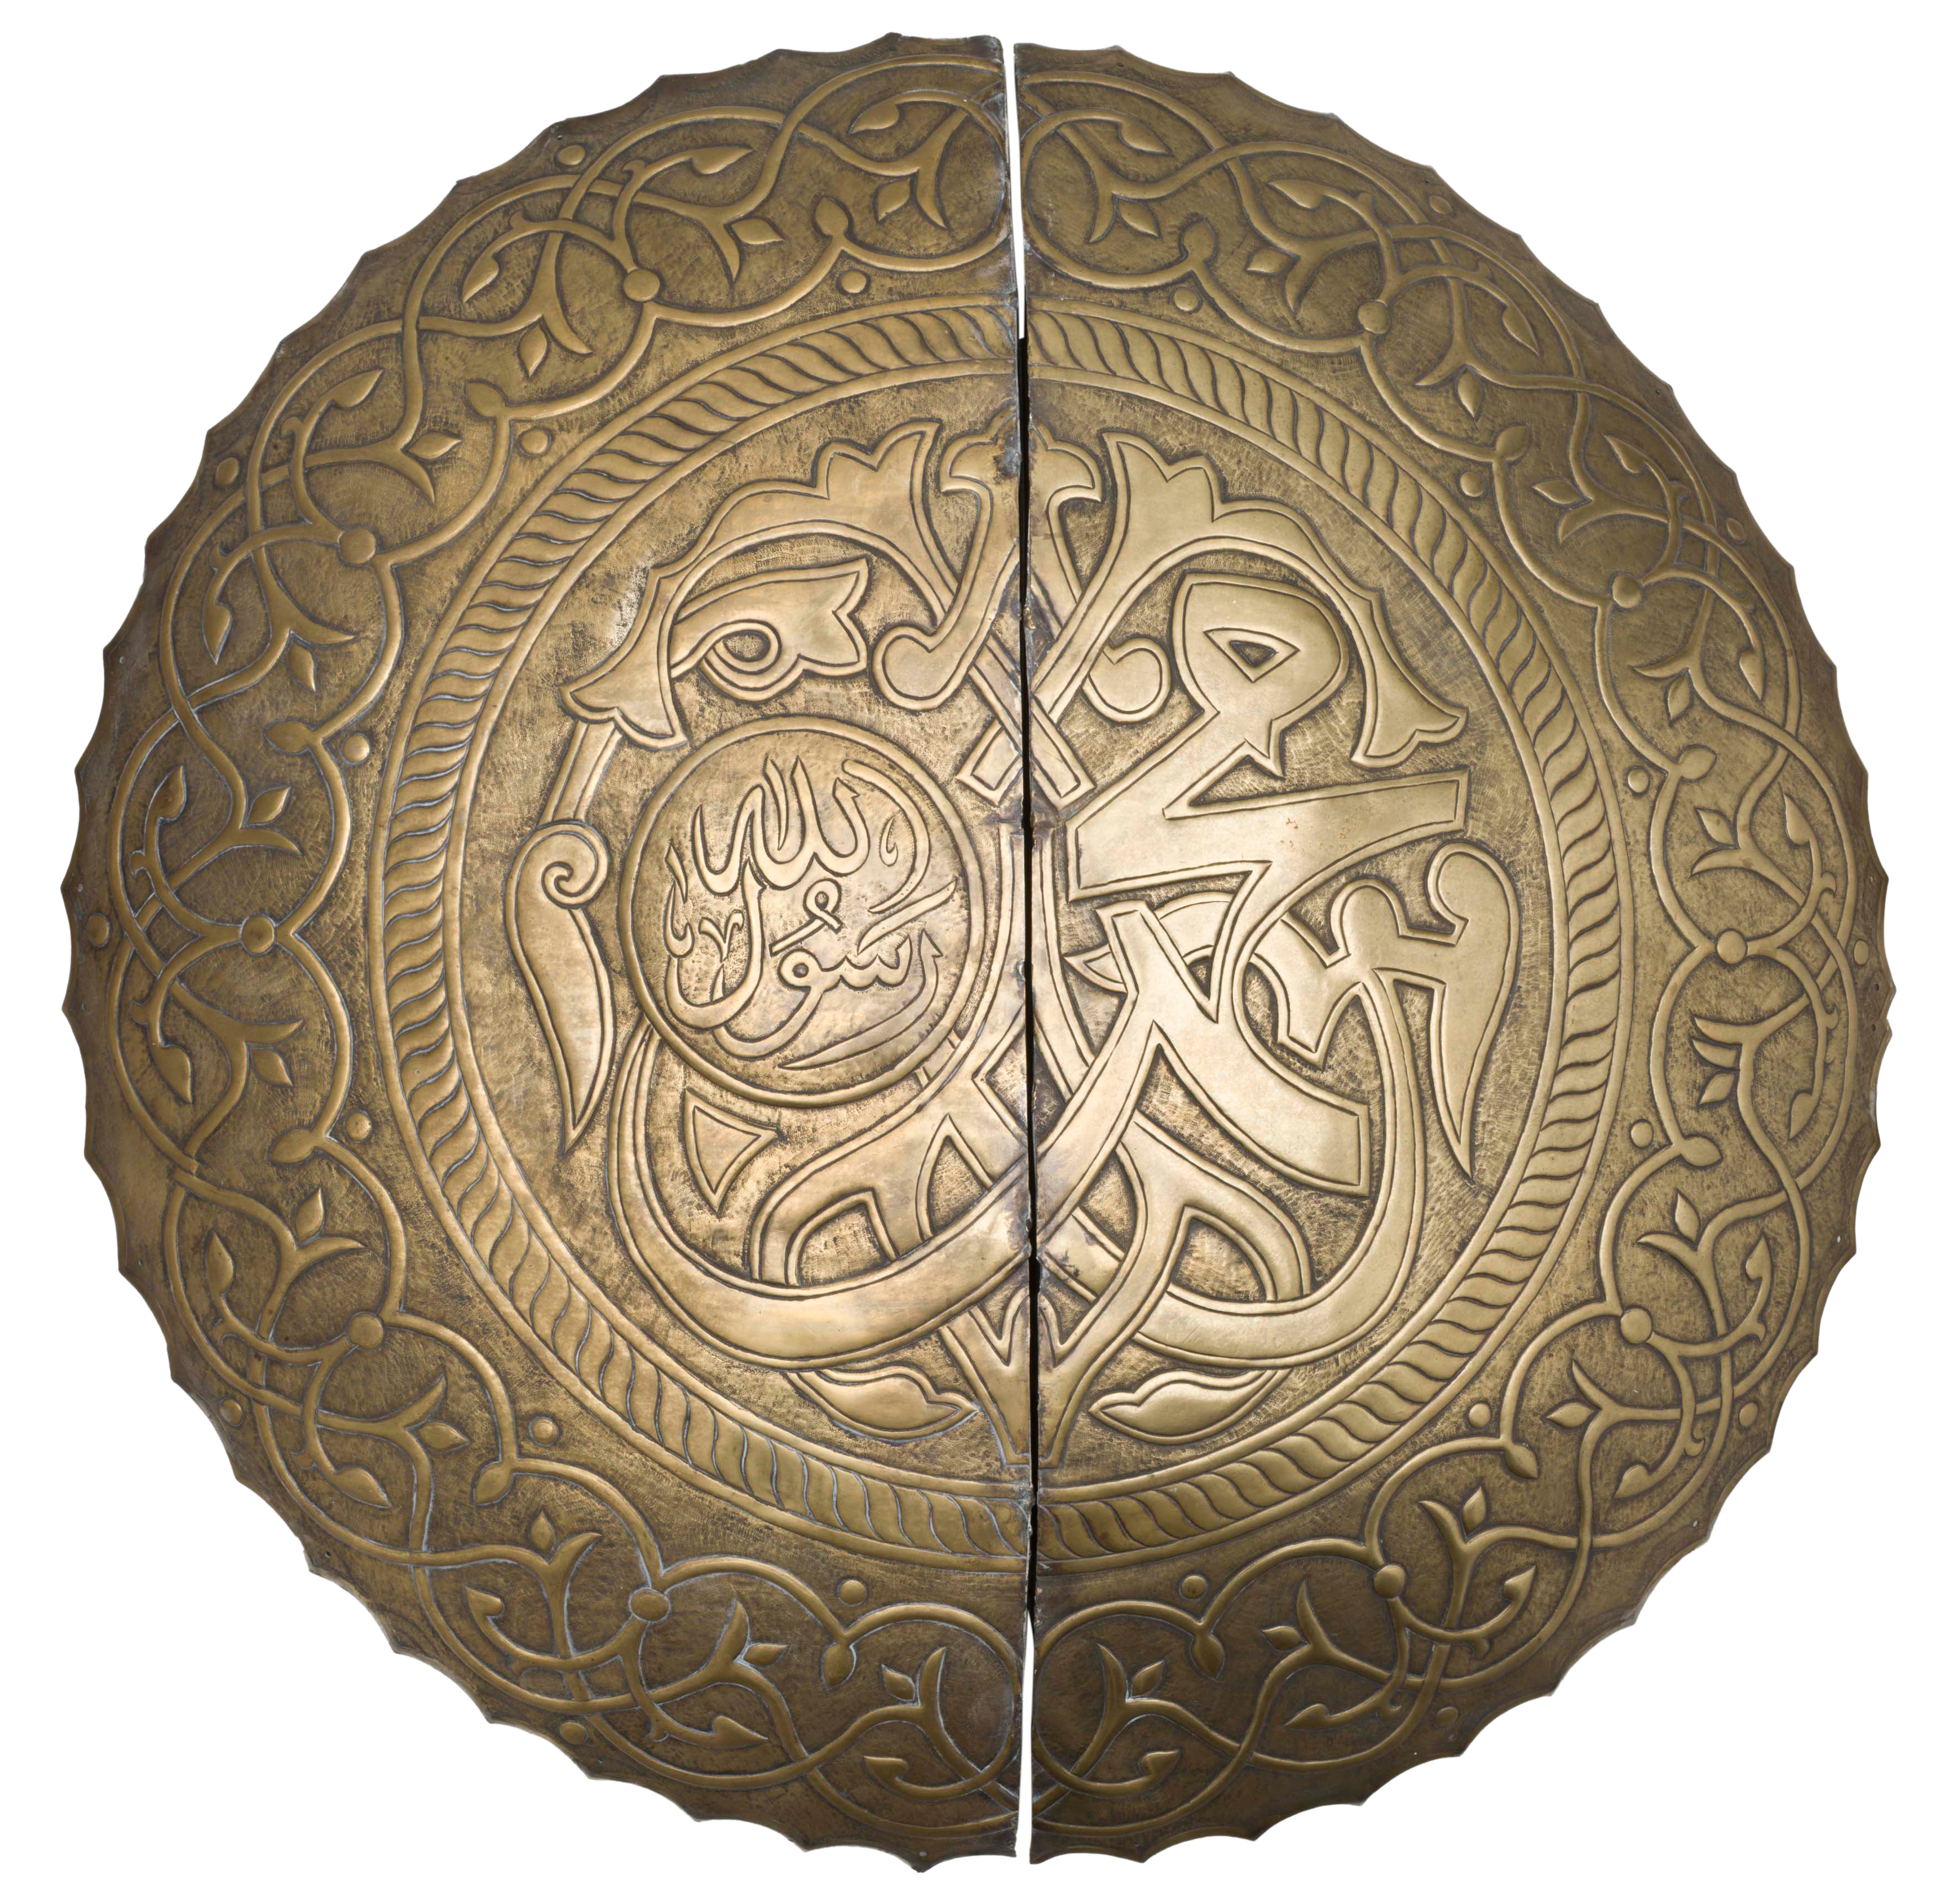 Decorative brass boss identical to bosses used on doors of the Prophet's mosque in Medina